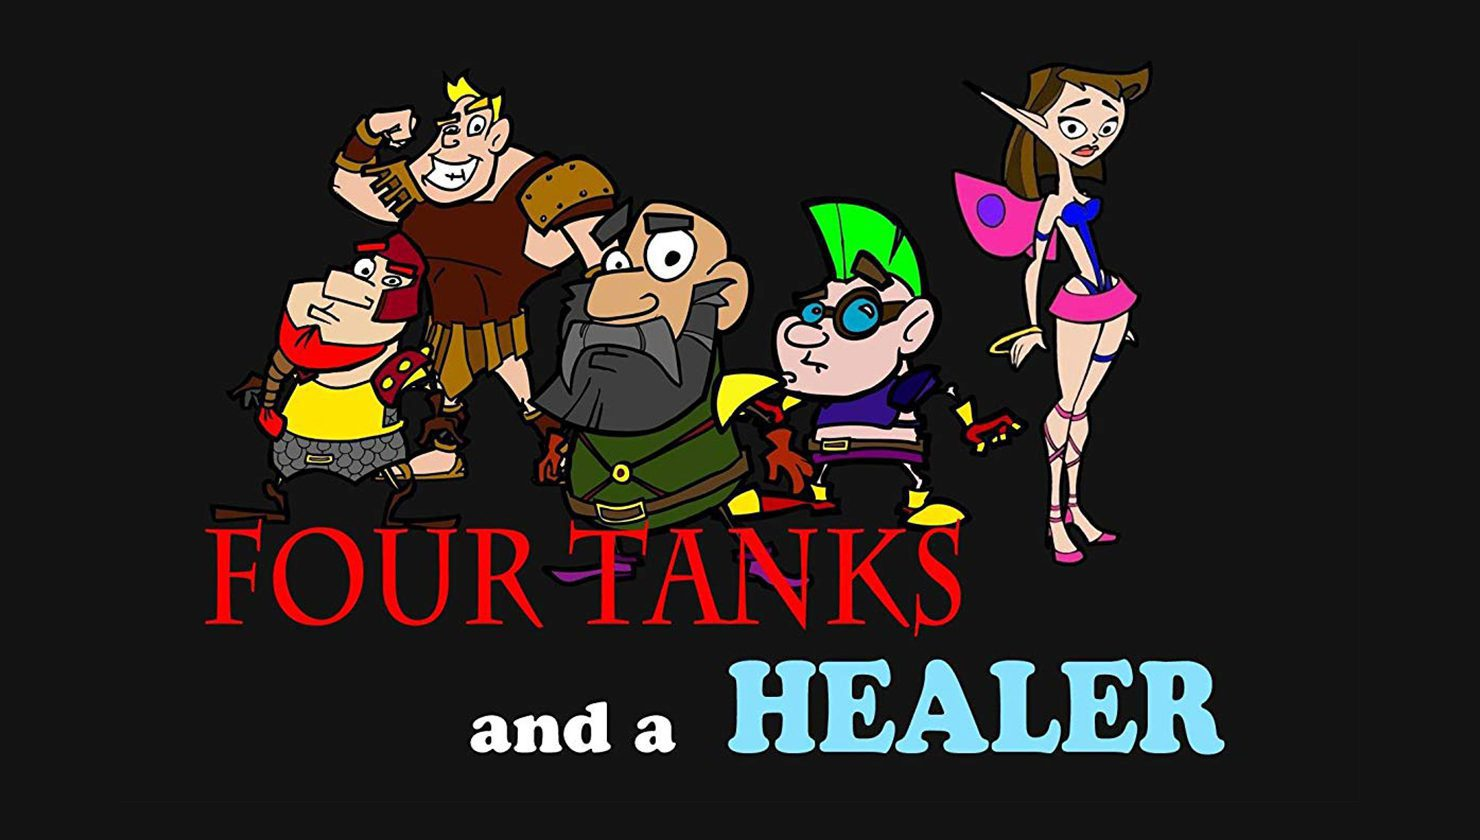 Four tanks and a healer